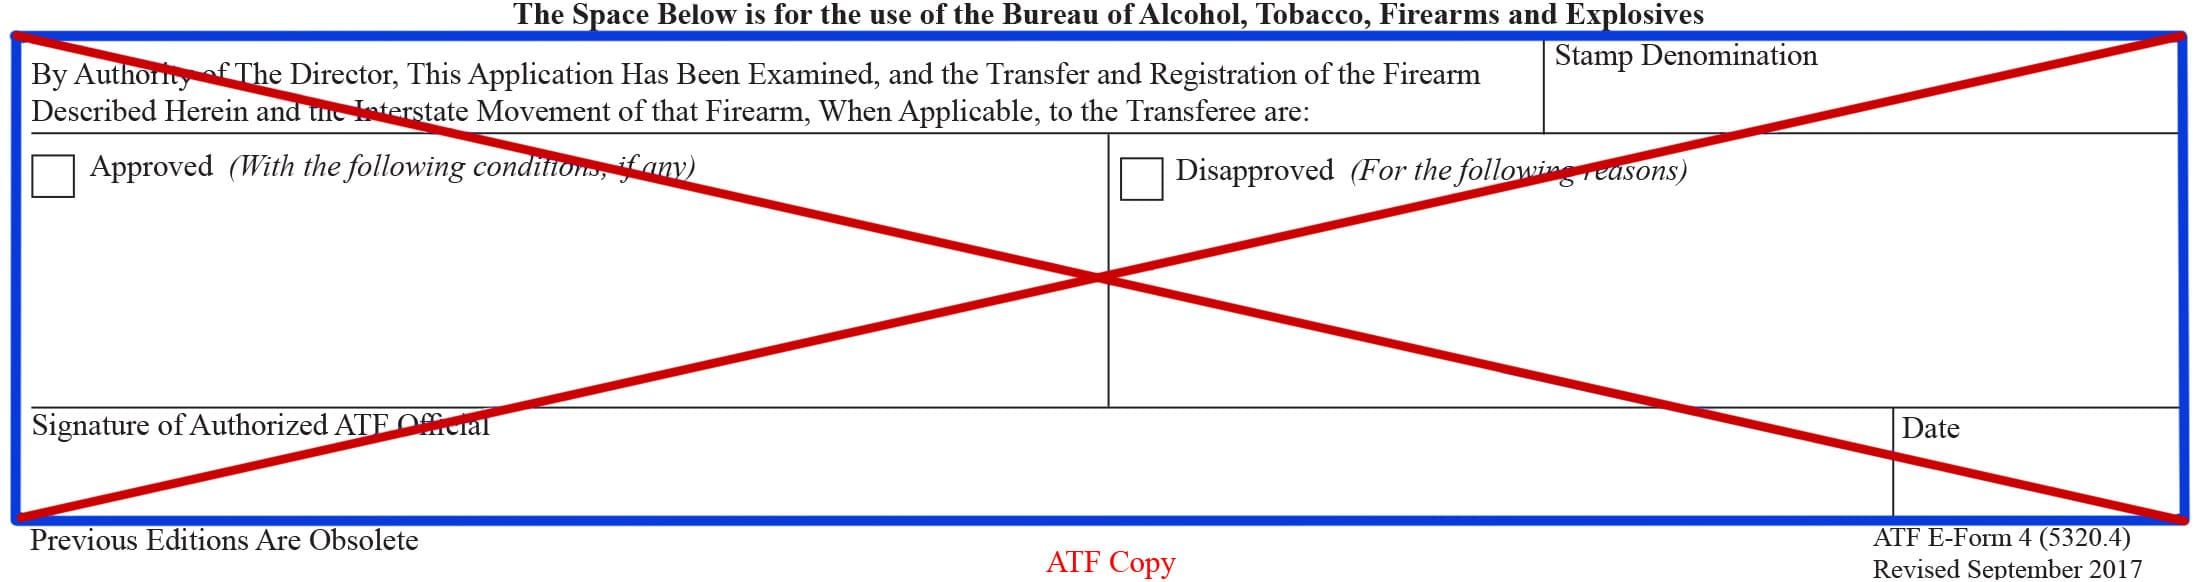 Space for ATF Decision